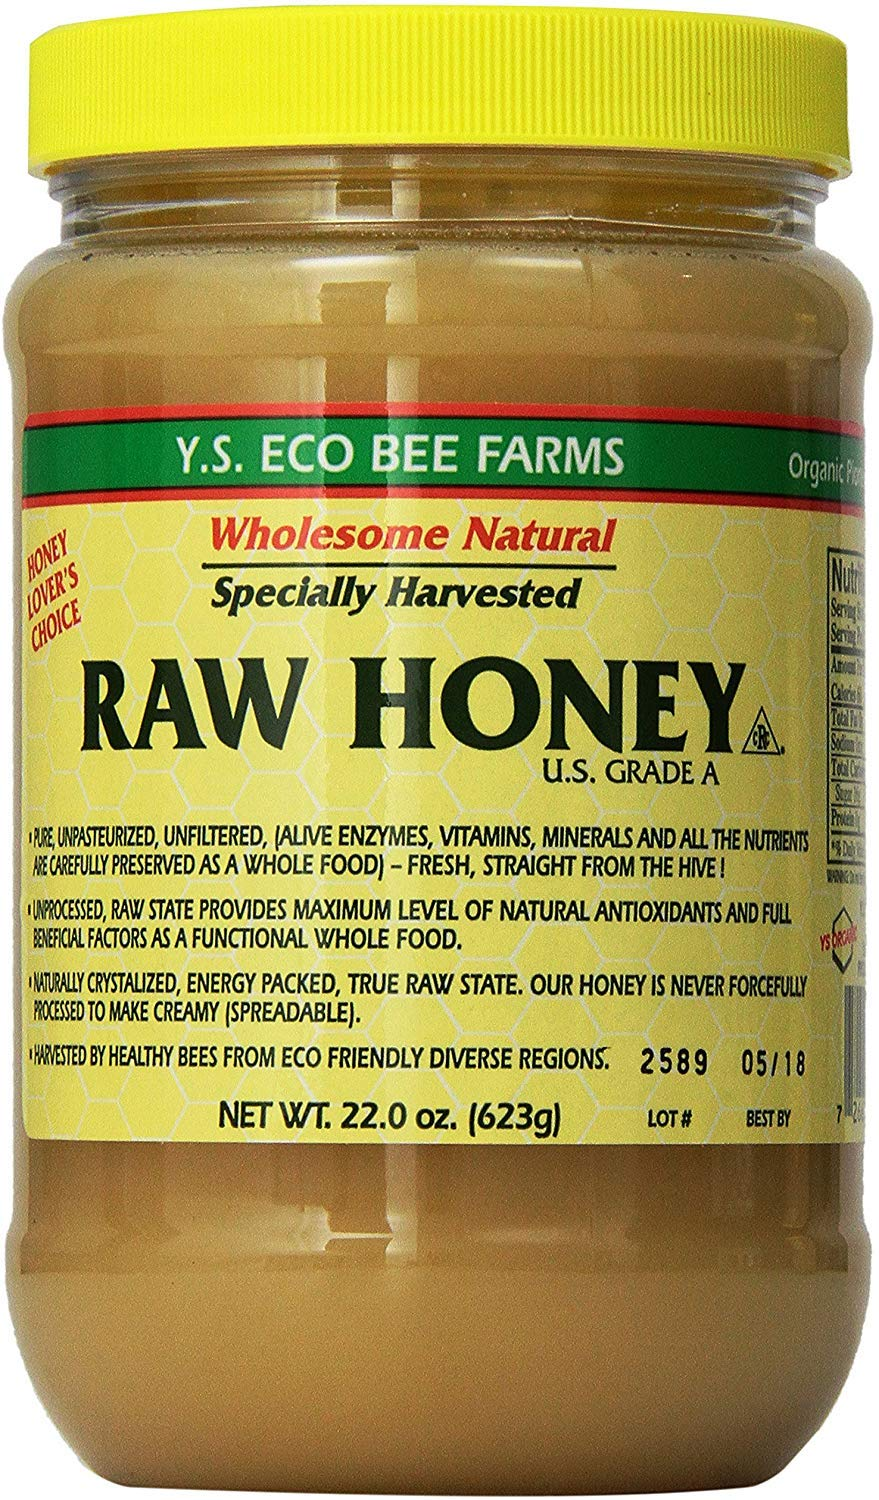 Y.S. Eco Bee Farms Raw Honey - 22 oz, Pack of 4